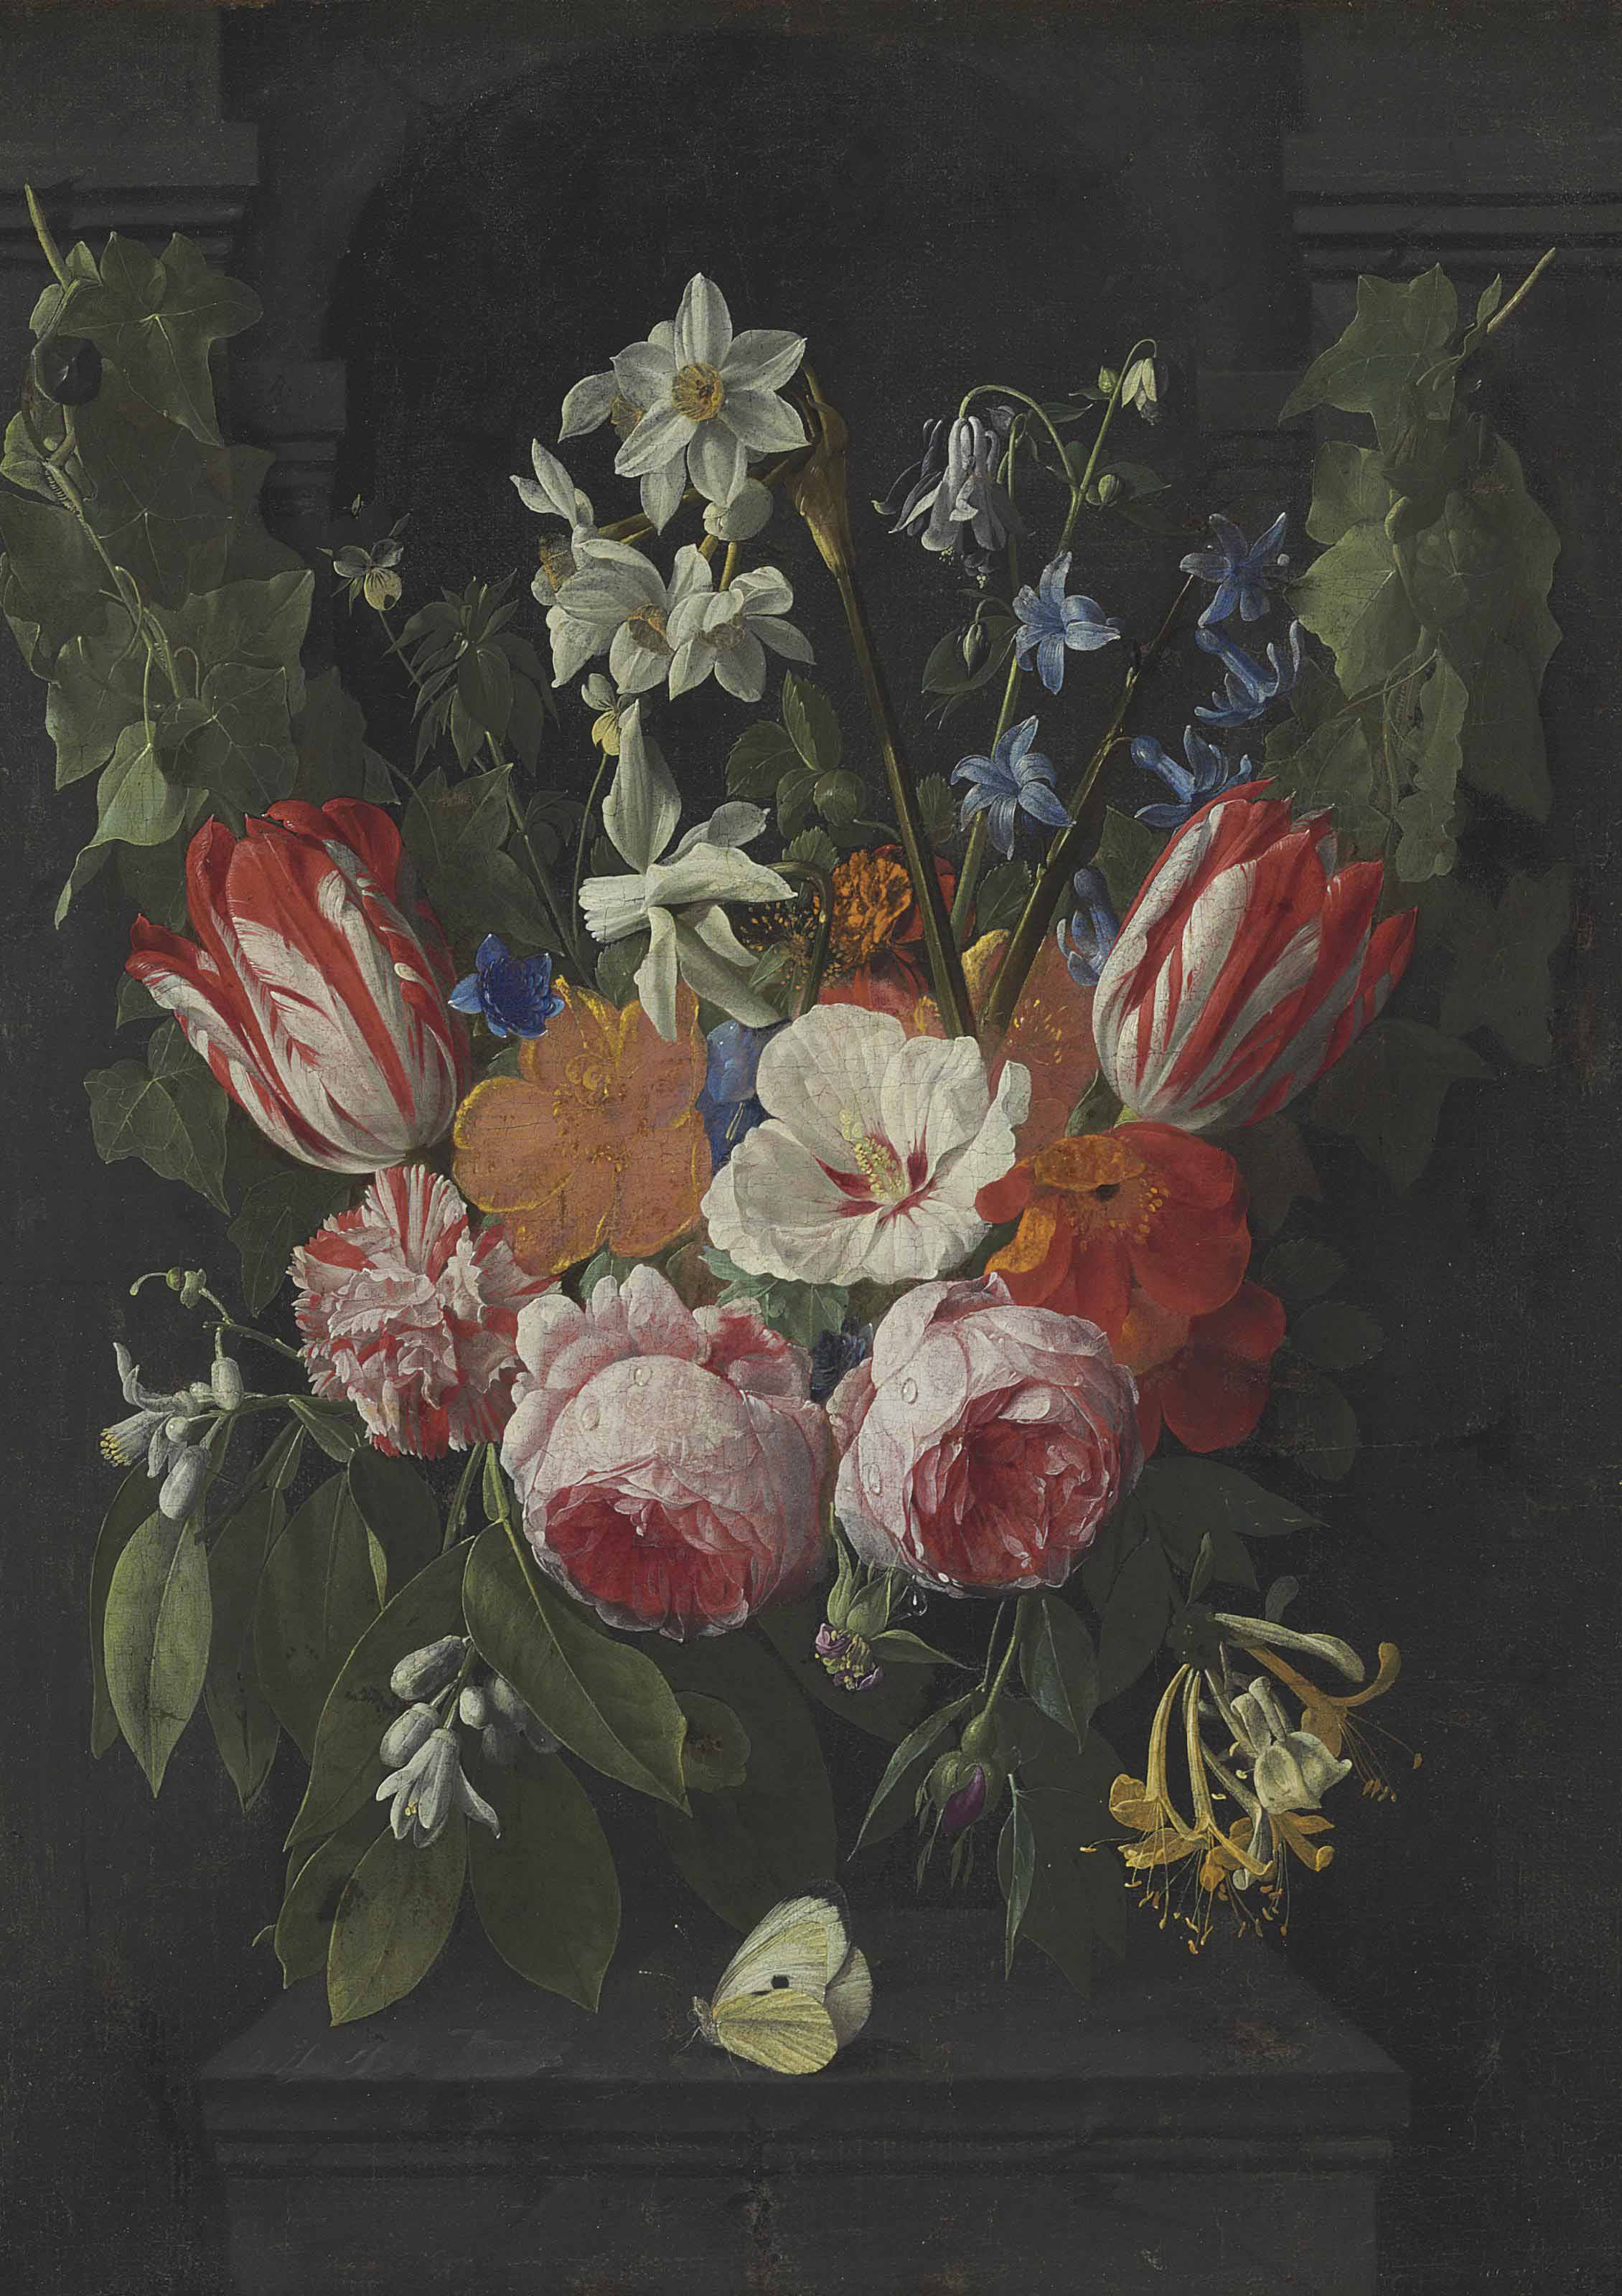 A swag of tulips, peonies, carnations, narcissi and other flowers with a butterfly in a stone niche